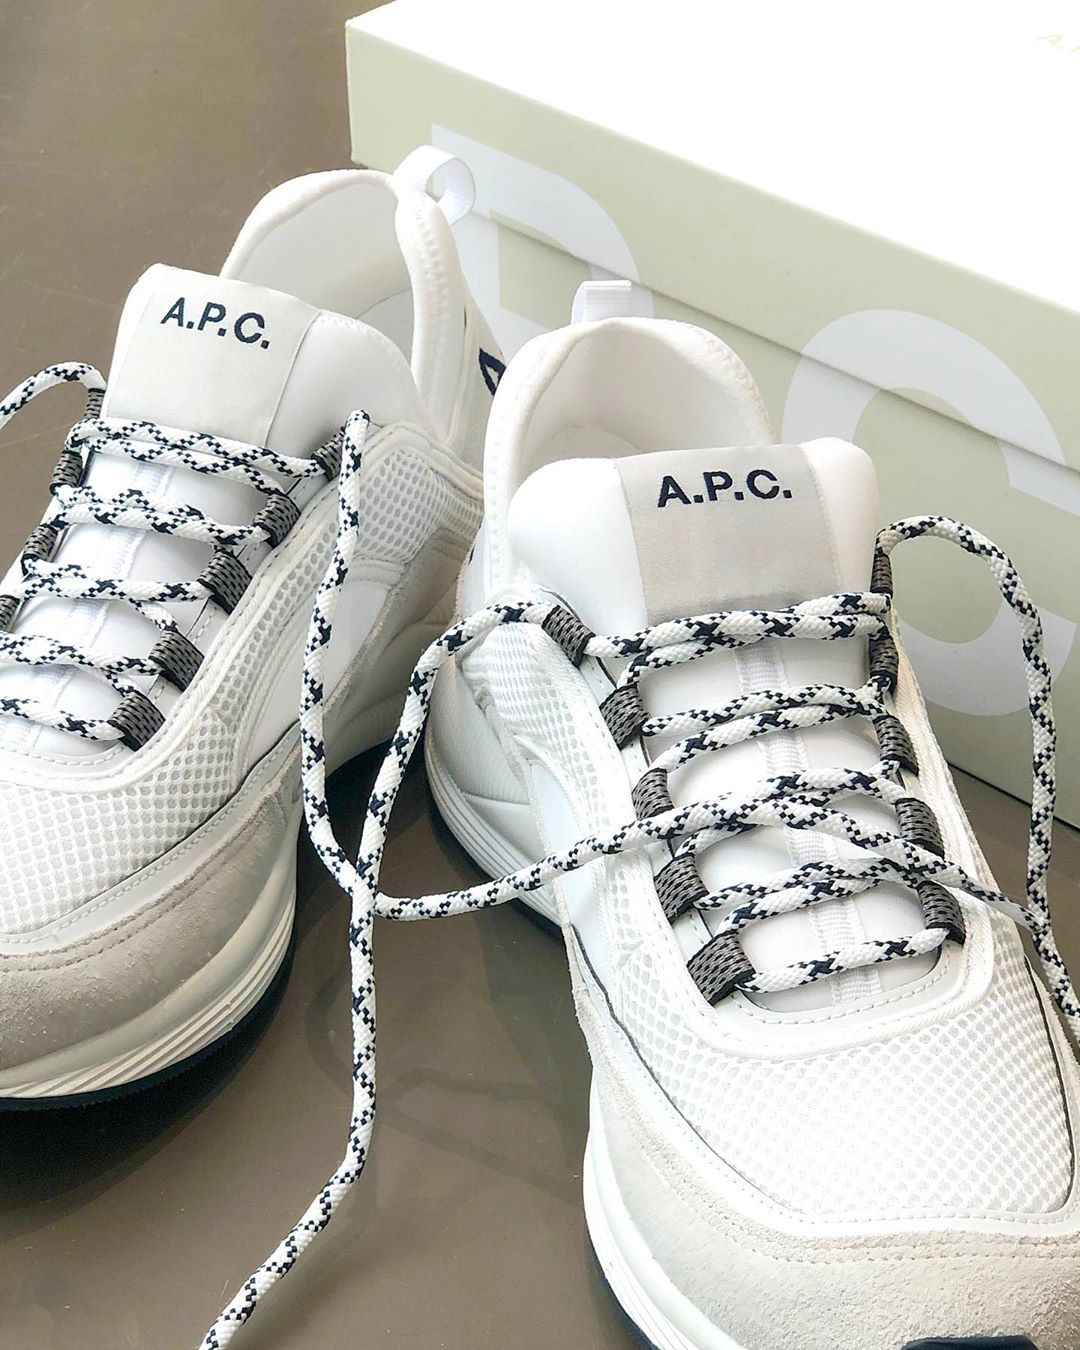 A P C On Instagram The Run Around Sneakers From The A P C Spring Summer 2019 Sneakers Names Are A Reference To The Sneakers Wedding Sneaker White Sneaker